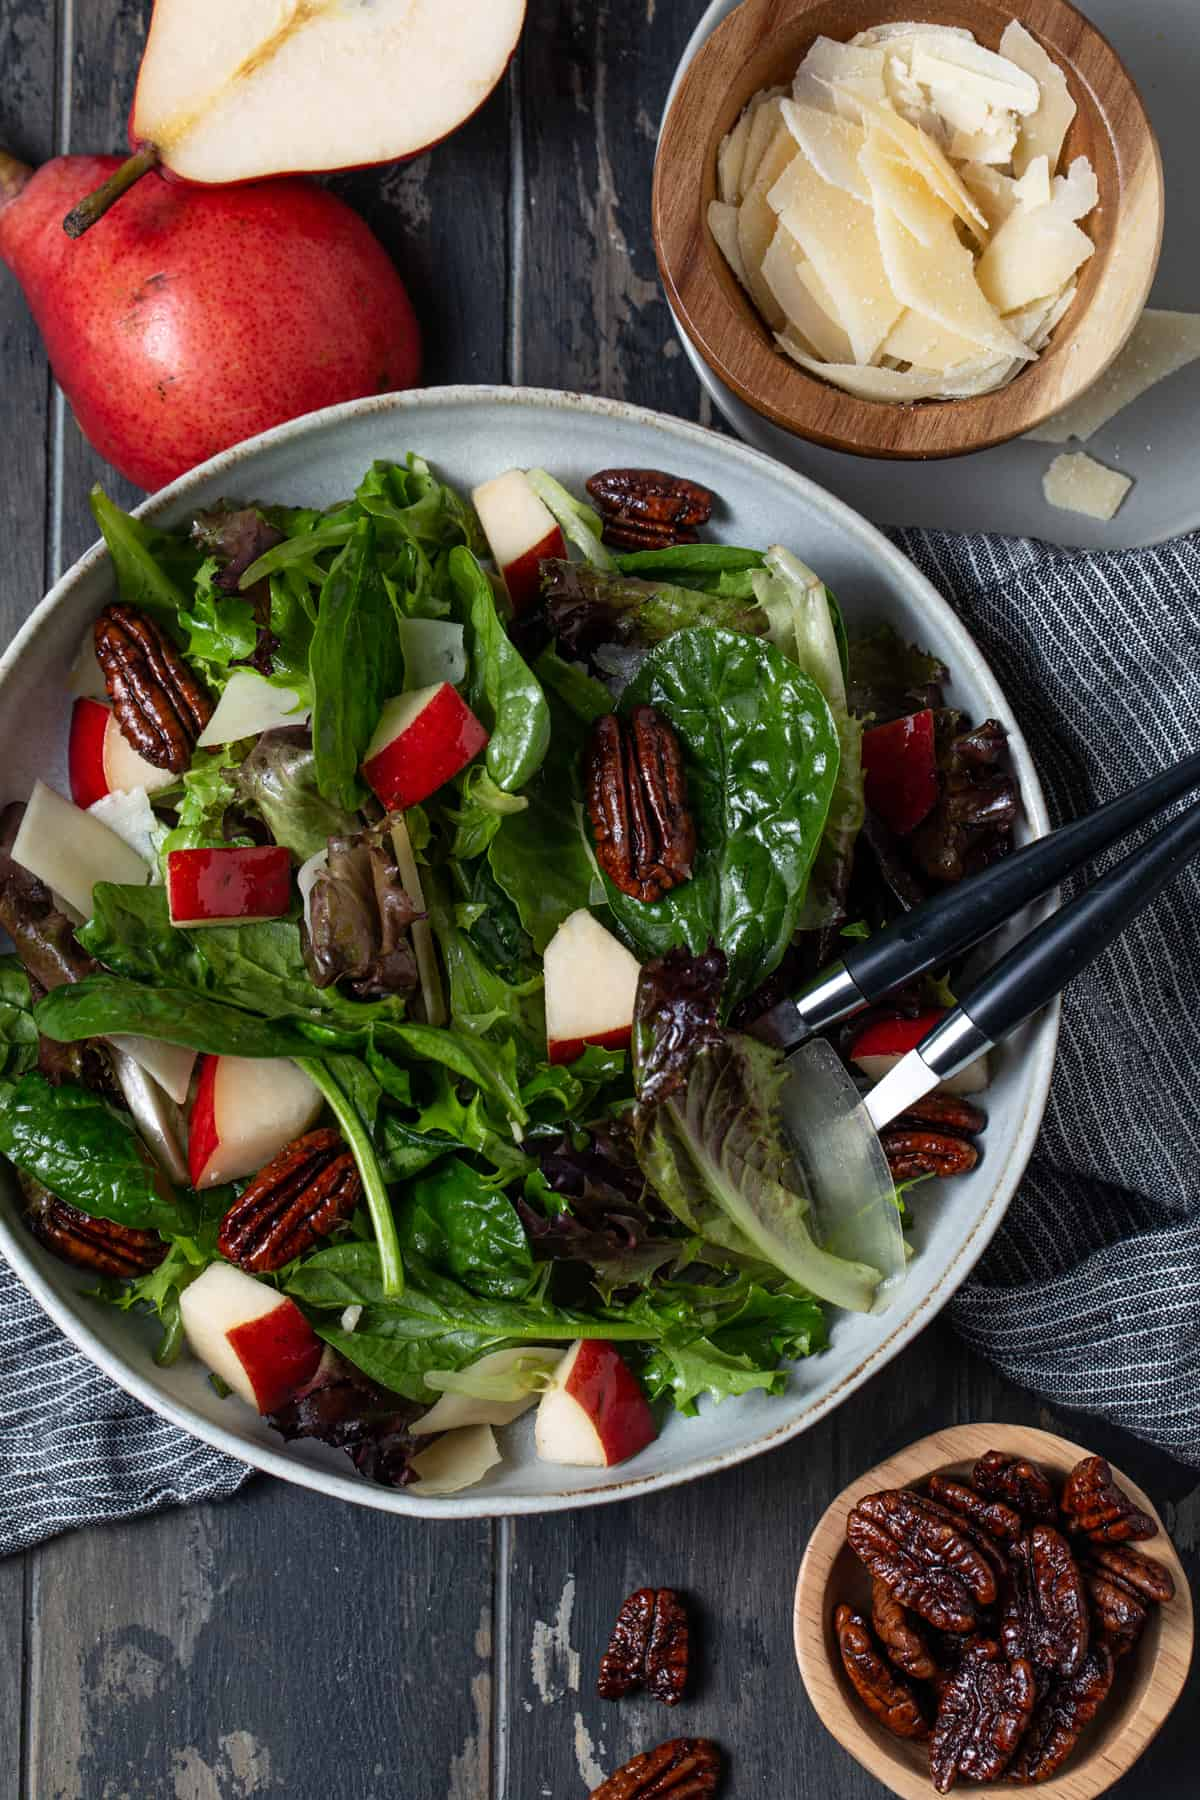 Pear salad in a gray bowl surrounded by pecans and parmesan cheese.